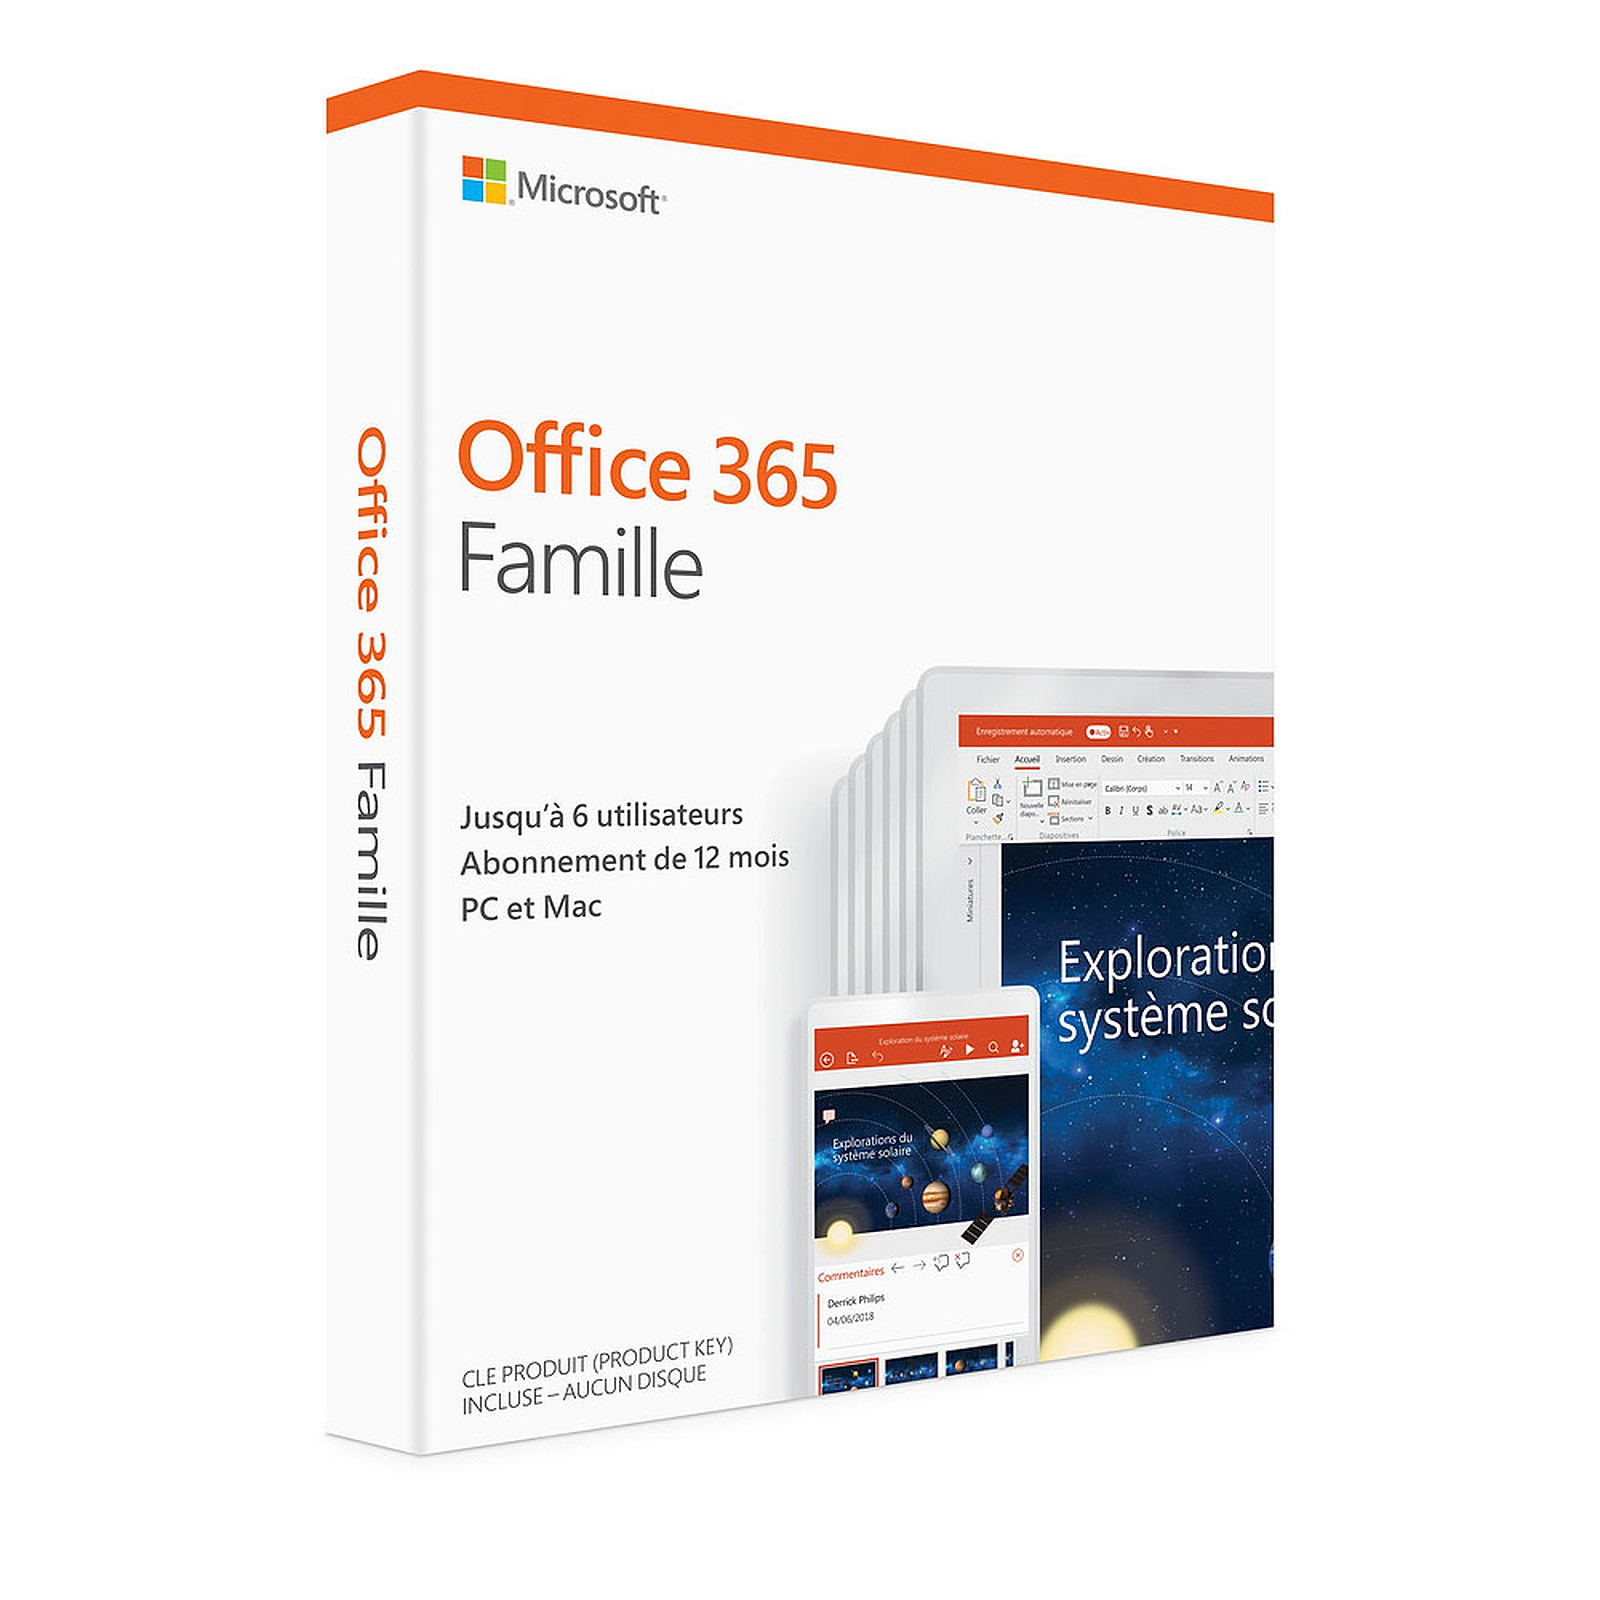 Microsoft Office 365 Famille (Français, pour Windows ou Mac) 6 postes, informatique Reunion 974, Futur Réunion informatique